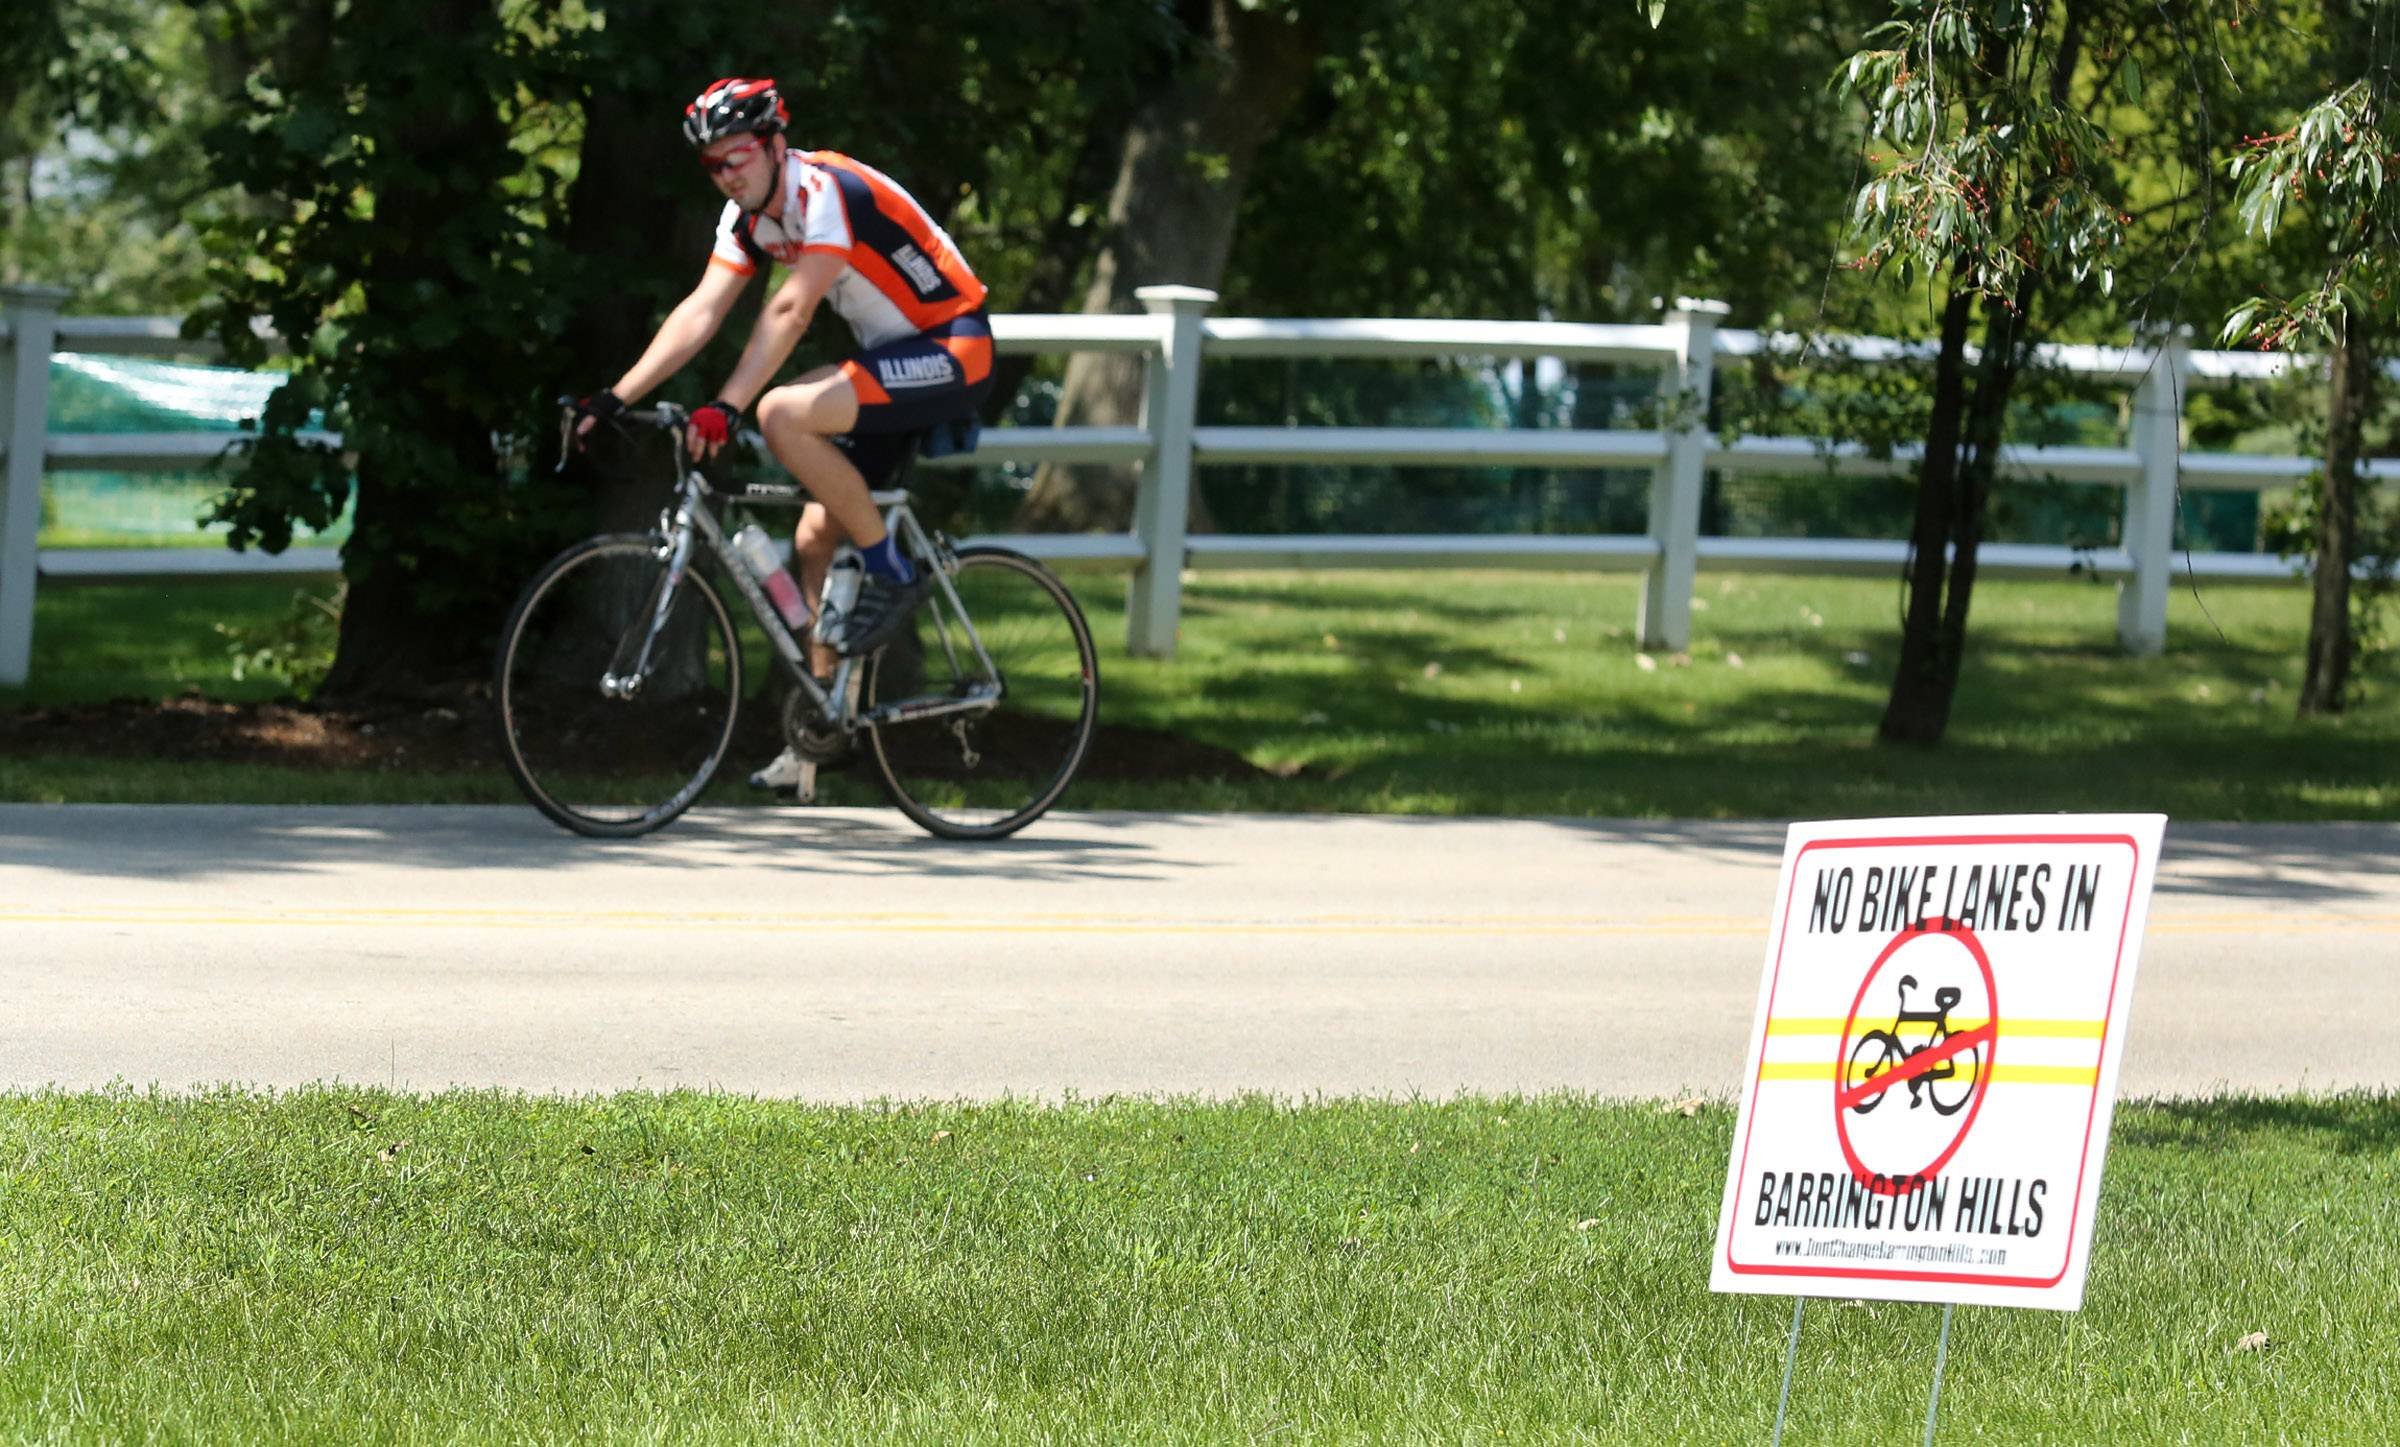 Unlike many suburbs, Barrington Hills is not welcoming to cyclists who ride along the village's scenic roads. Cyclists say residents have yelled at them, driven them off the road and even pelted them with objects.